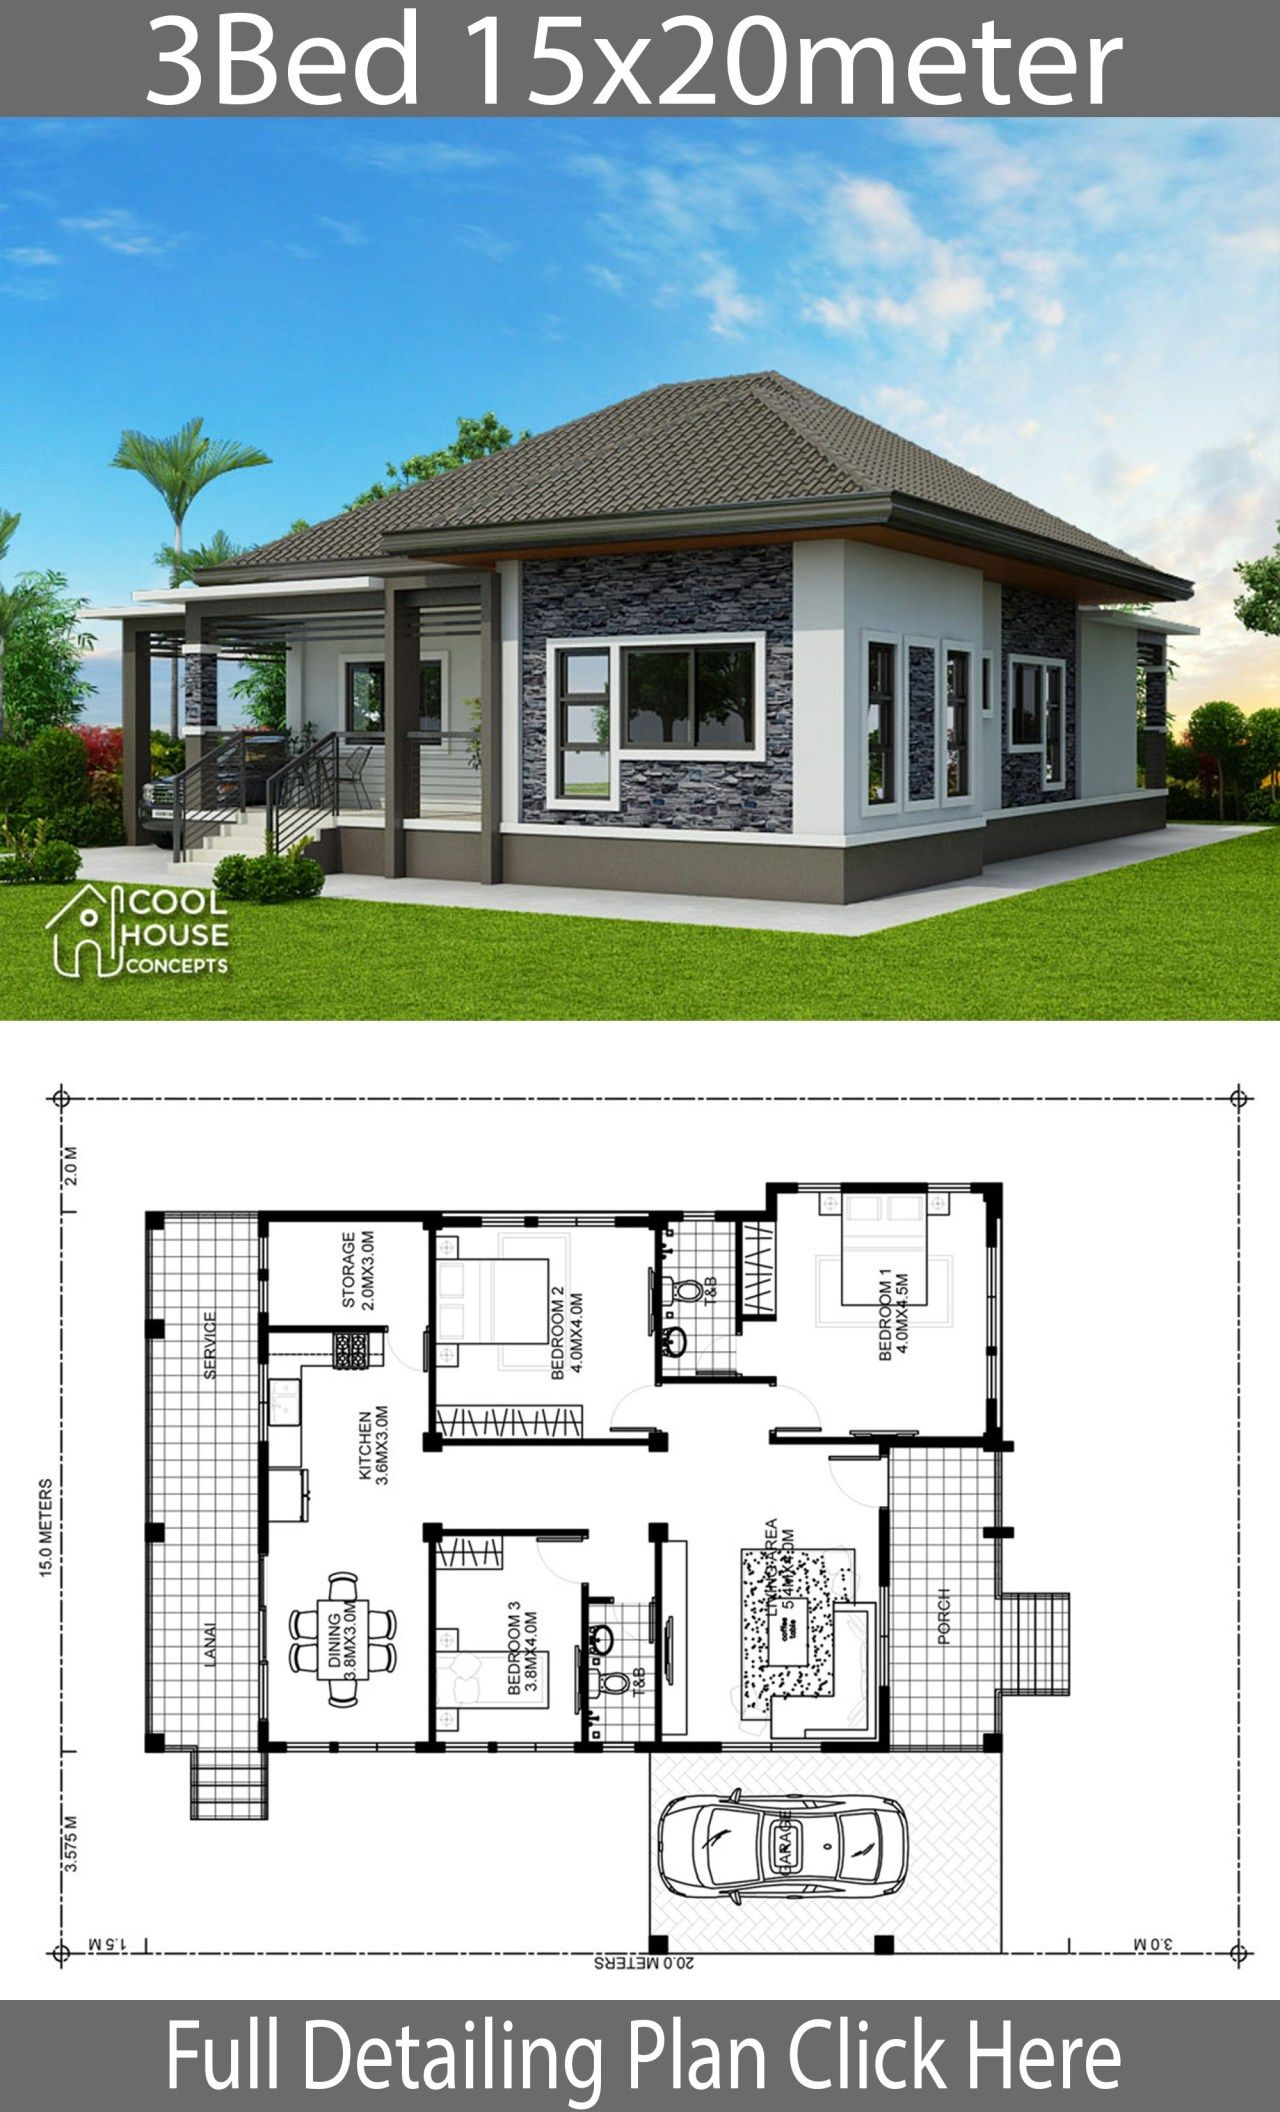 Home Design Plan 15x20m With 3 Bedrooms Home Ideas Philippines House Design Beautiful House Plans Modern Bungalow House